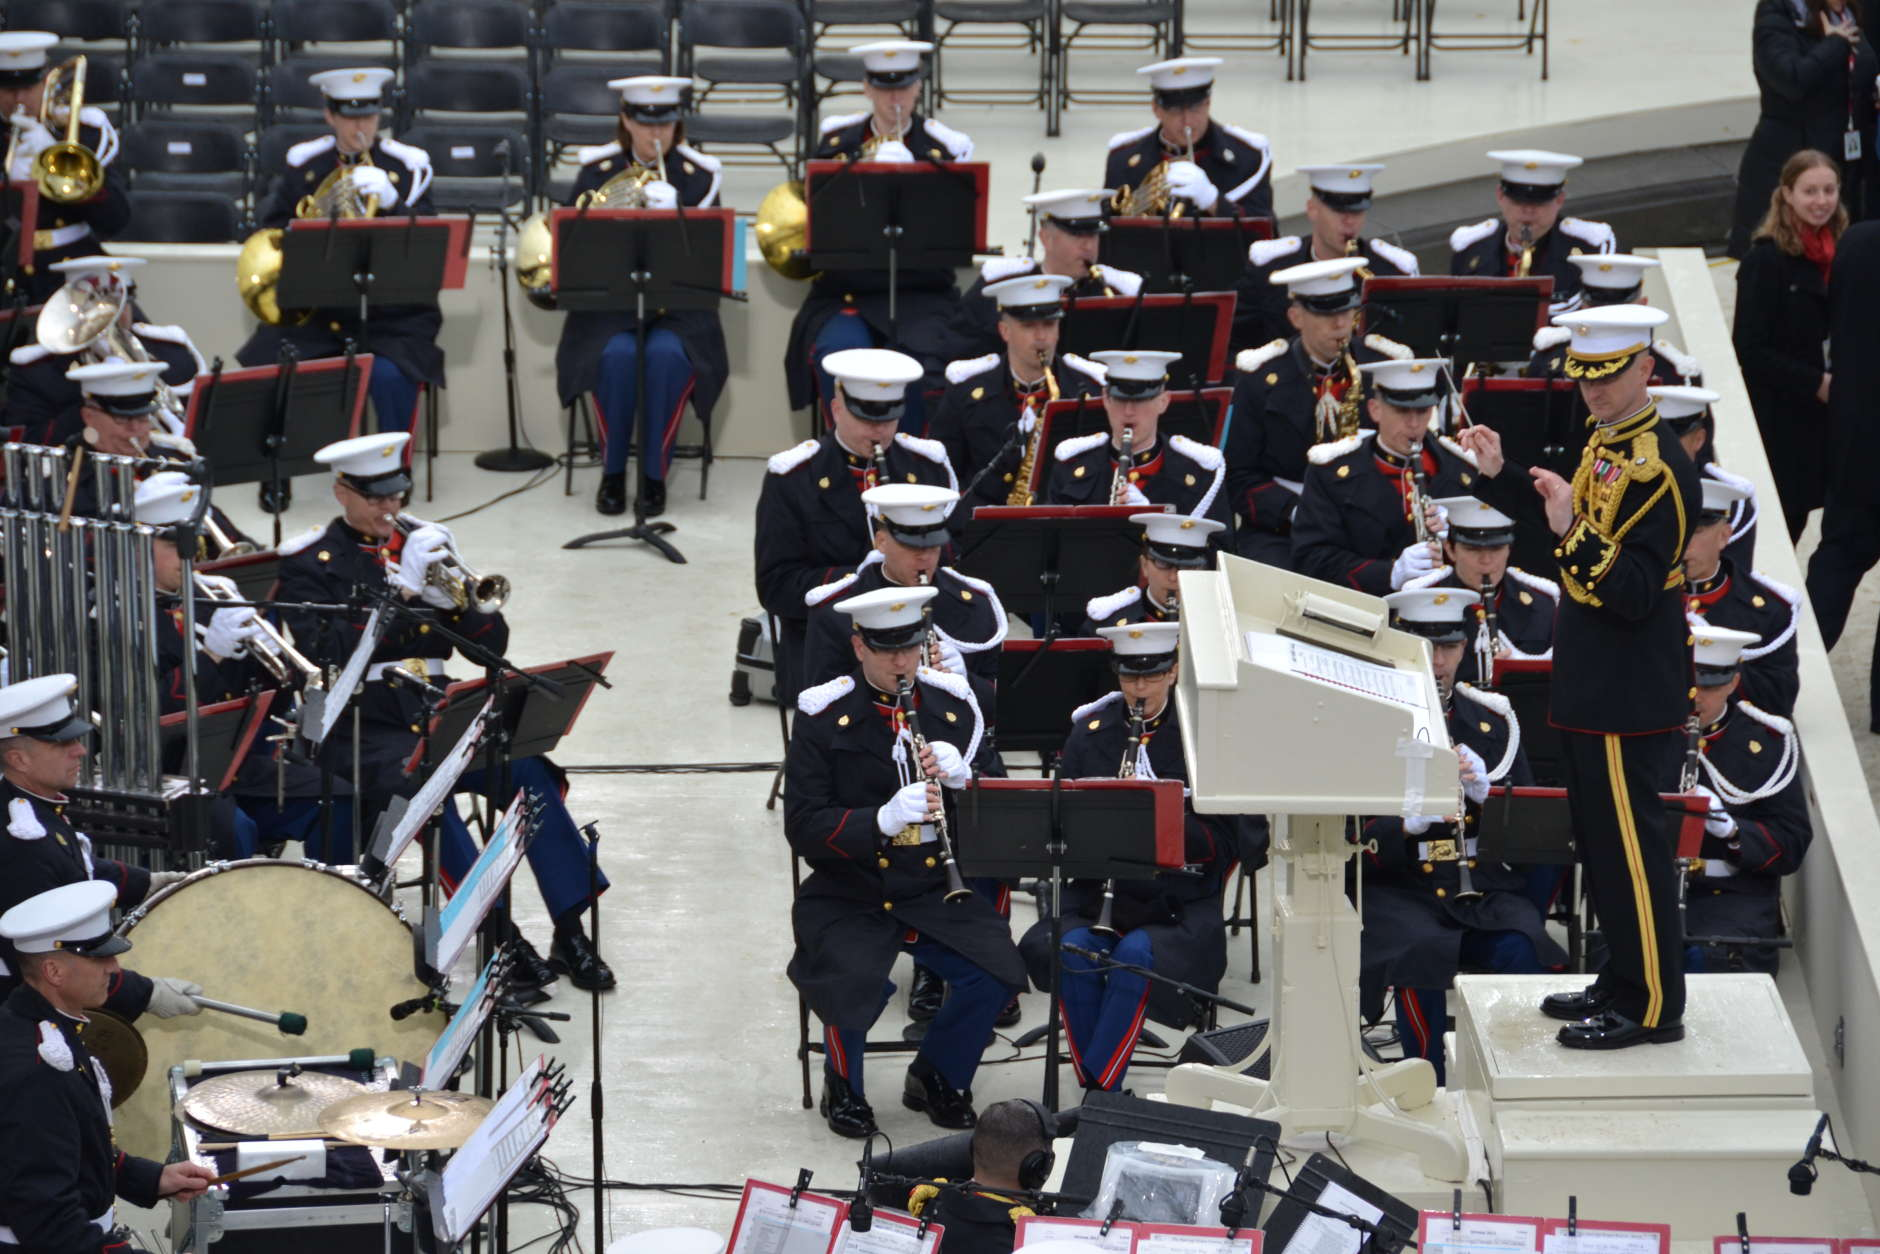 """""""The President's Own"""" U.S. Marine Band has started to perform in advance of Donald Trump's swearing in, WTOP's Brennan Haselton says. (WTOP/Brennan Haselton)"""